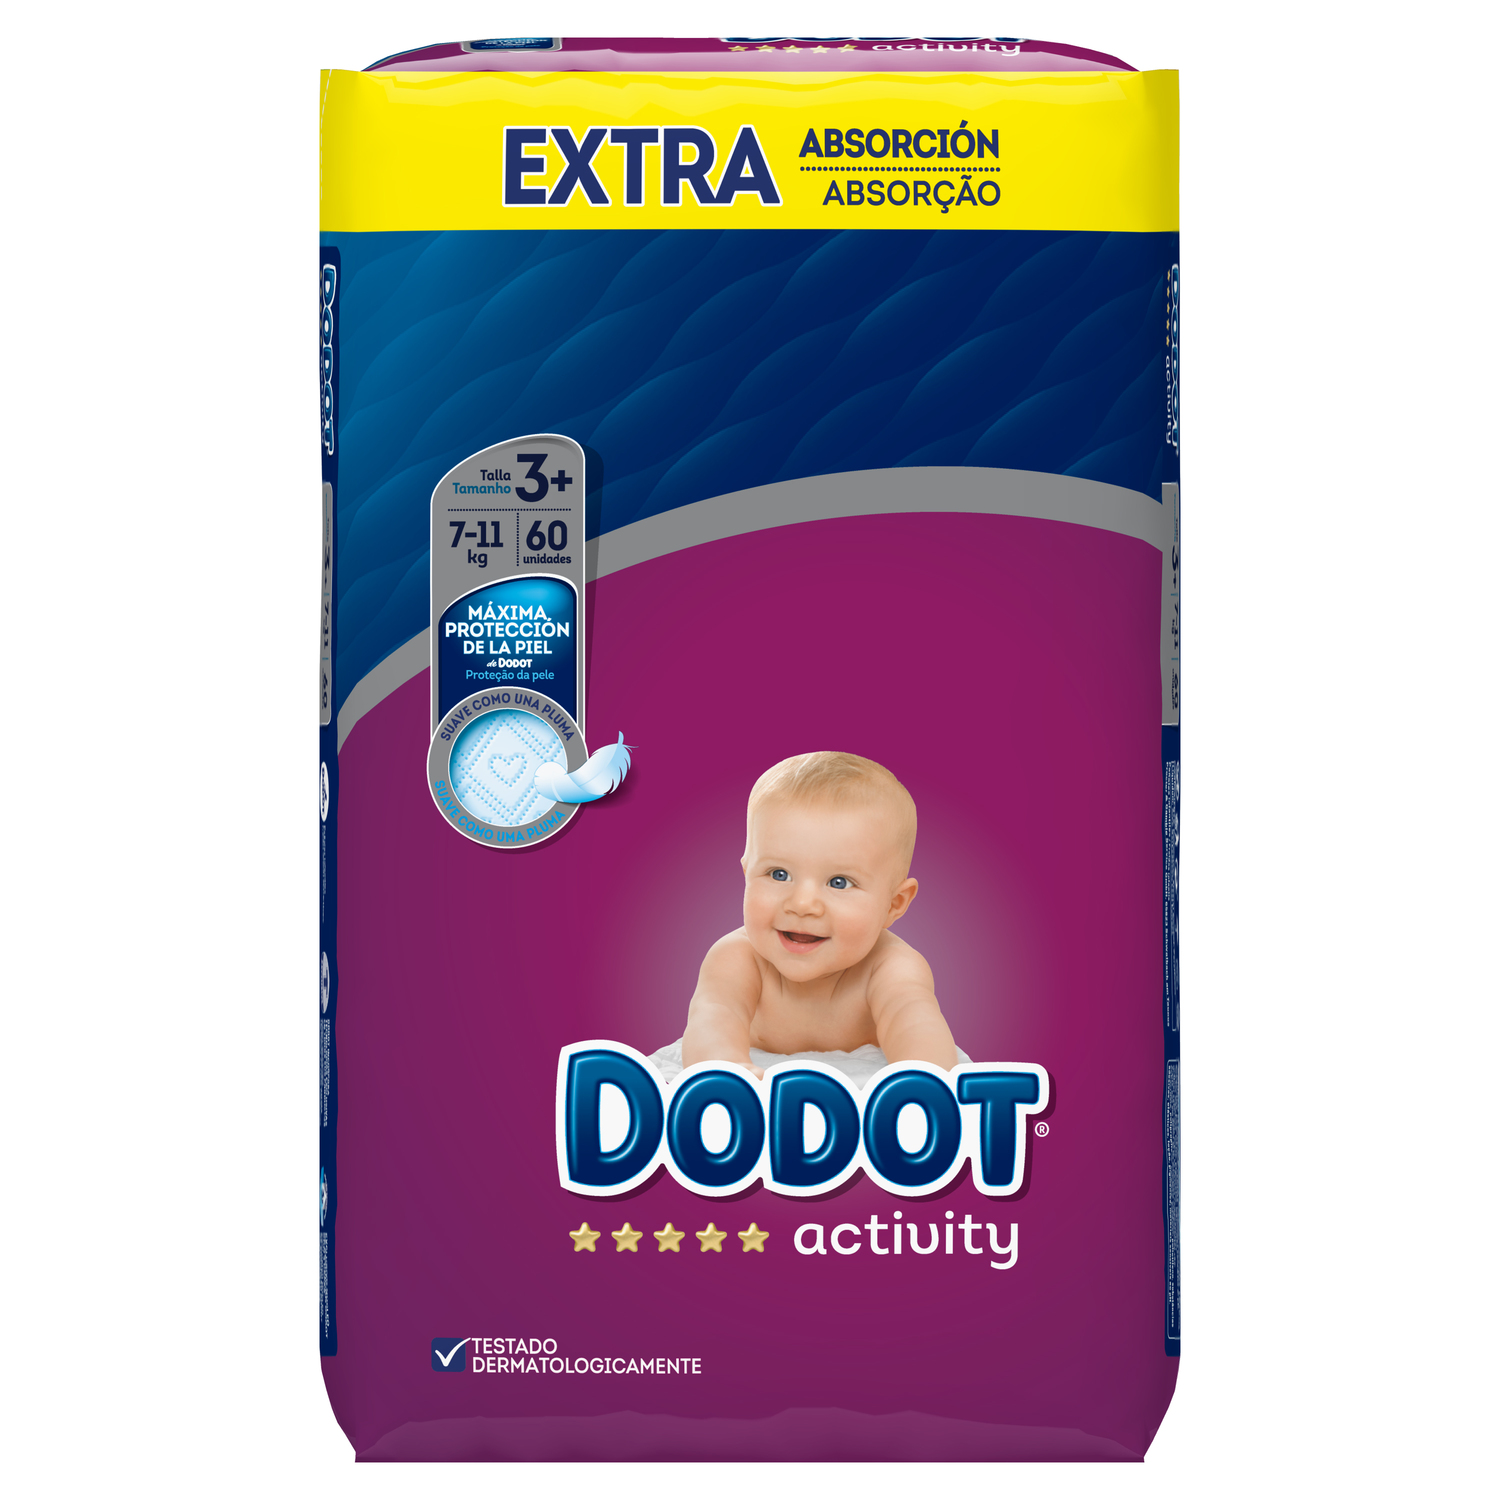 Pañales T3+ (7-11 kg.) Dodot Activity Extra 60 ud.